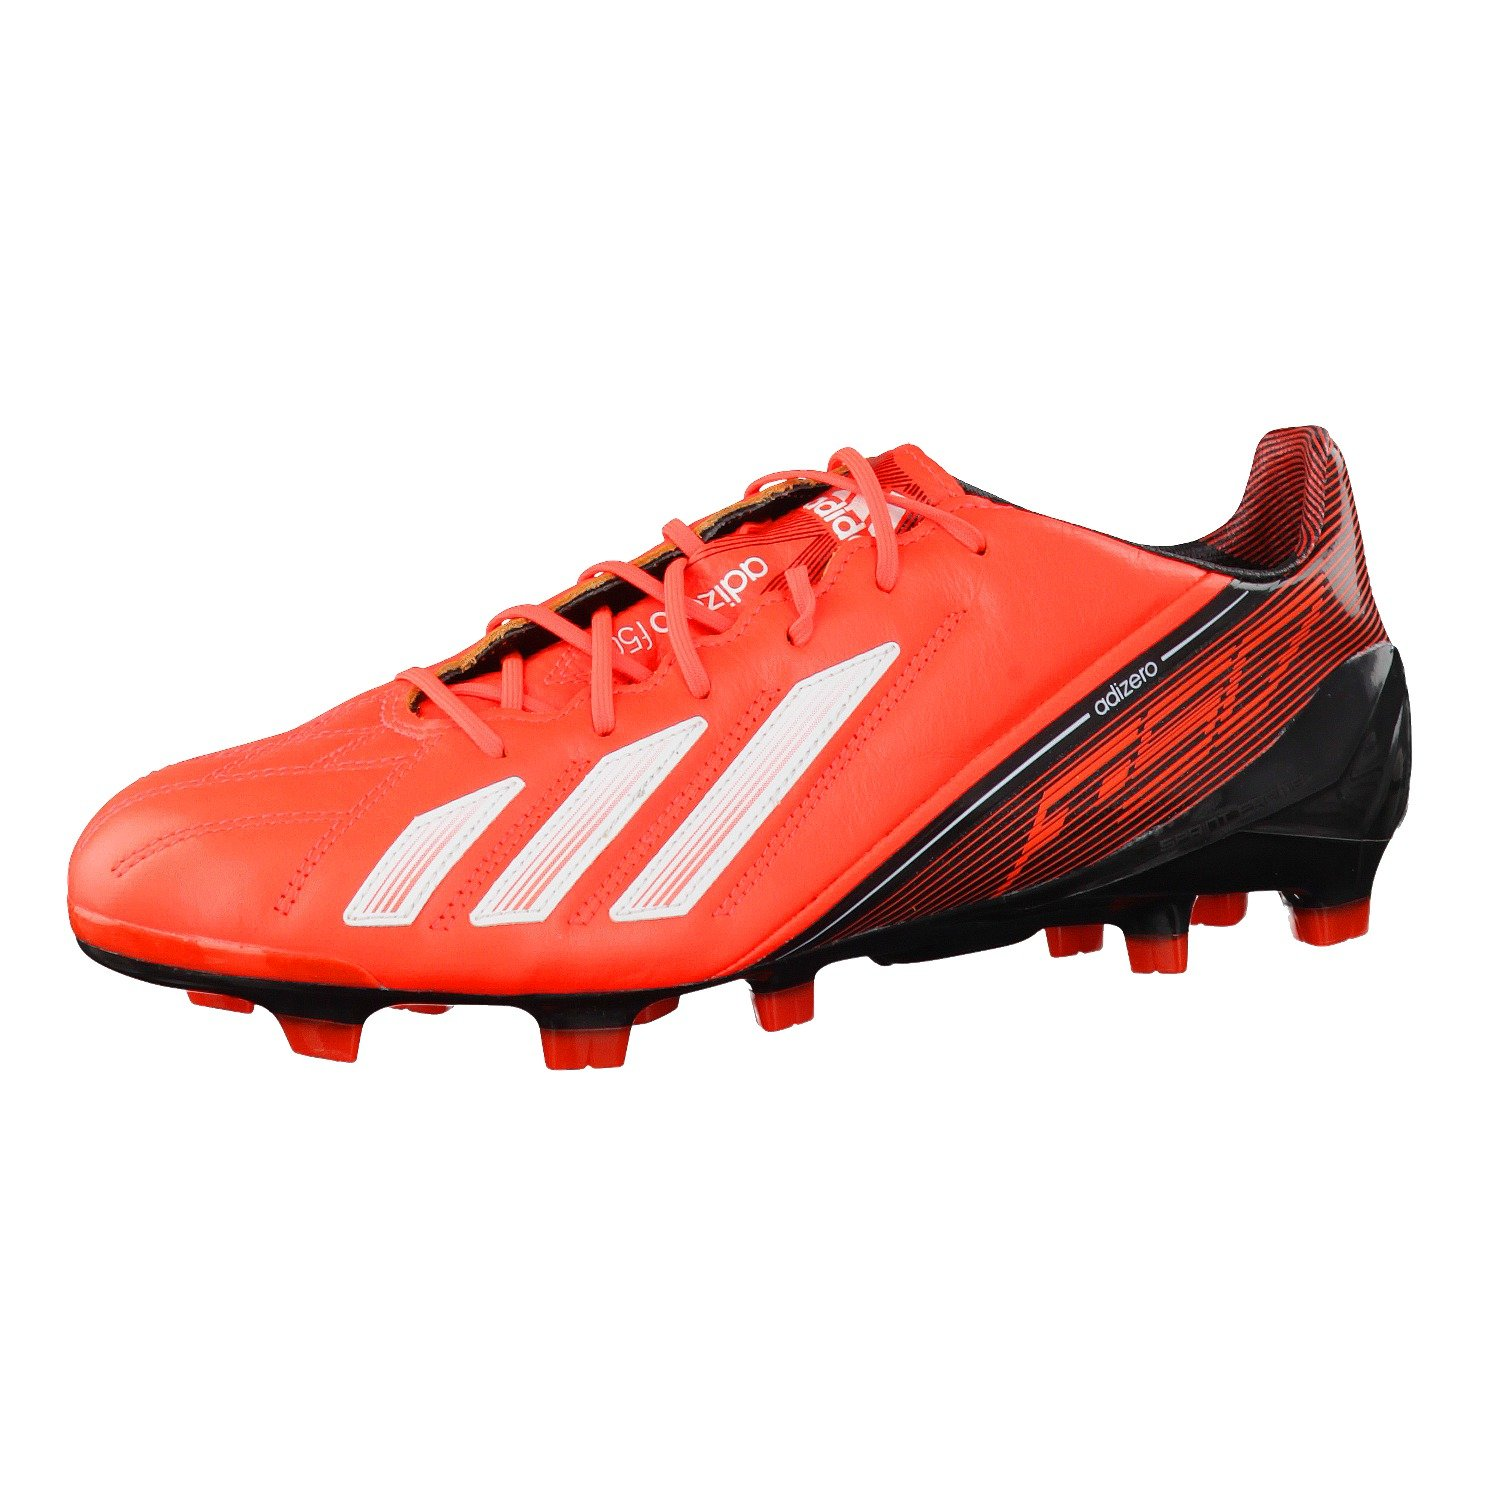 adidas Adizero f50 TRX FG Leather Chaussures de Football Homme Cuir Rouge